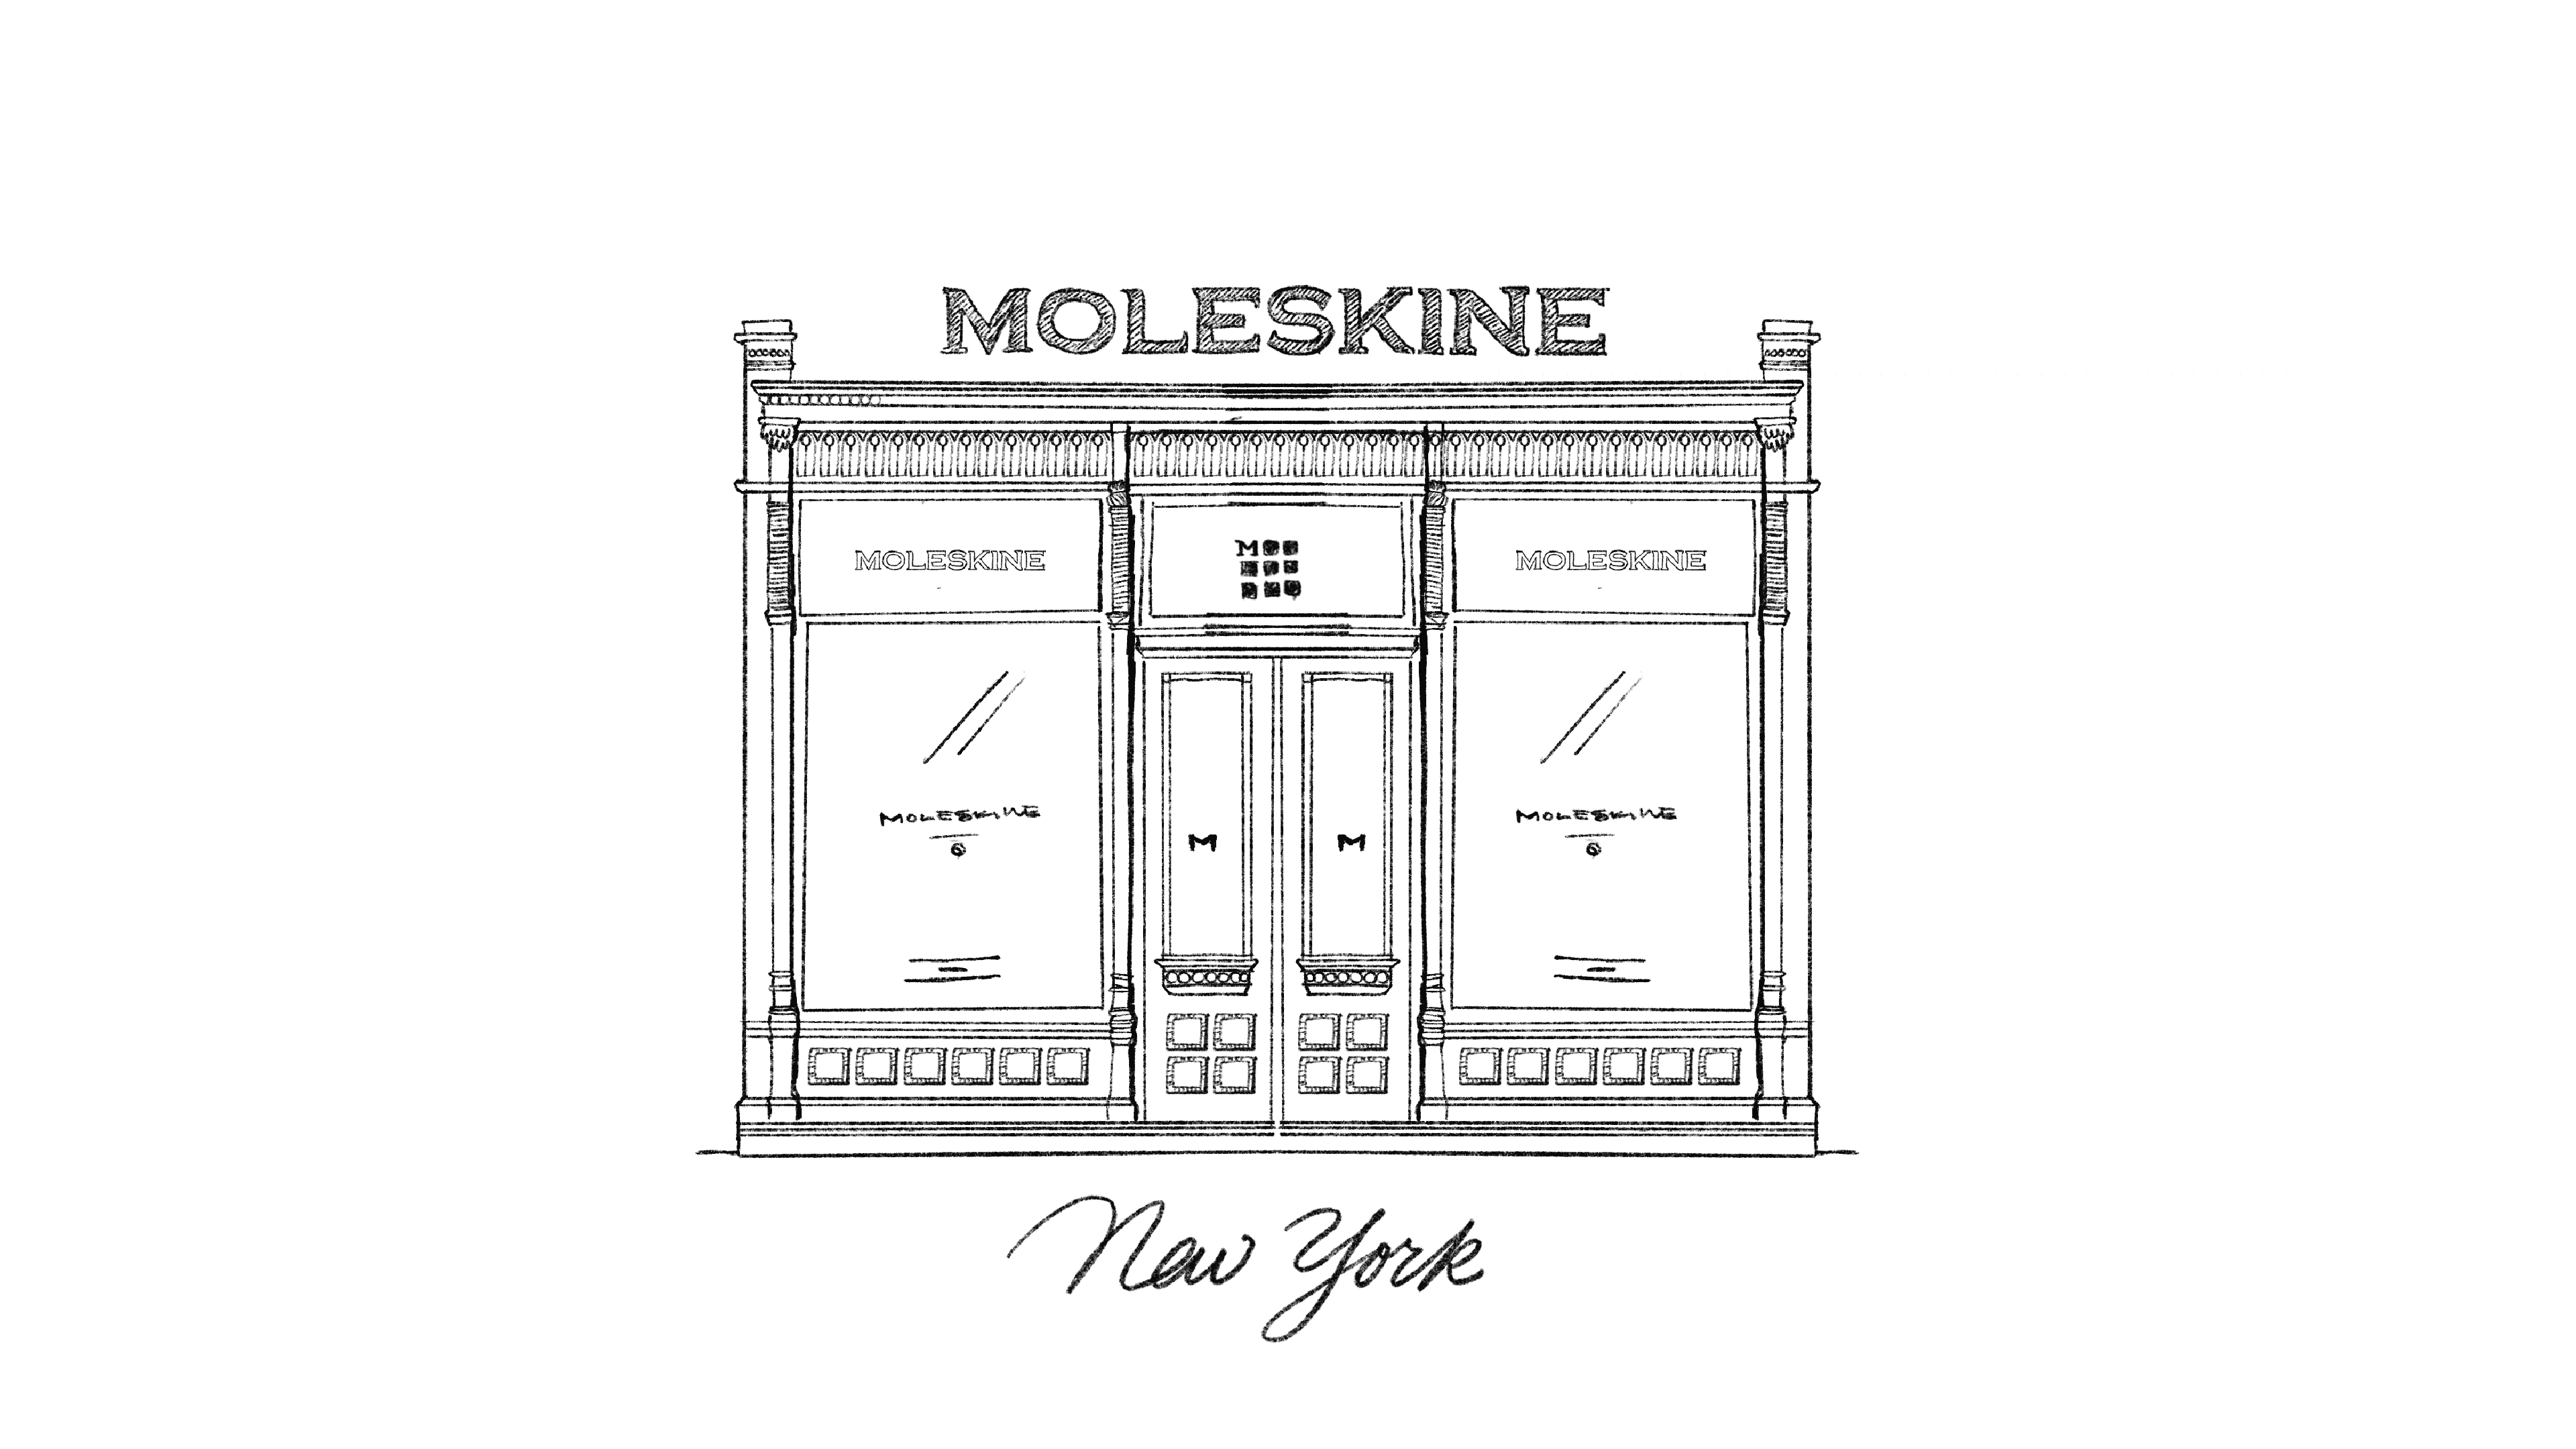 MOLESKINE-store-sign-sketch-02